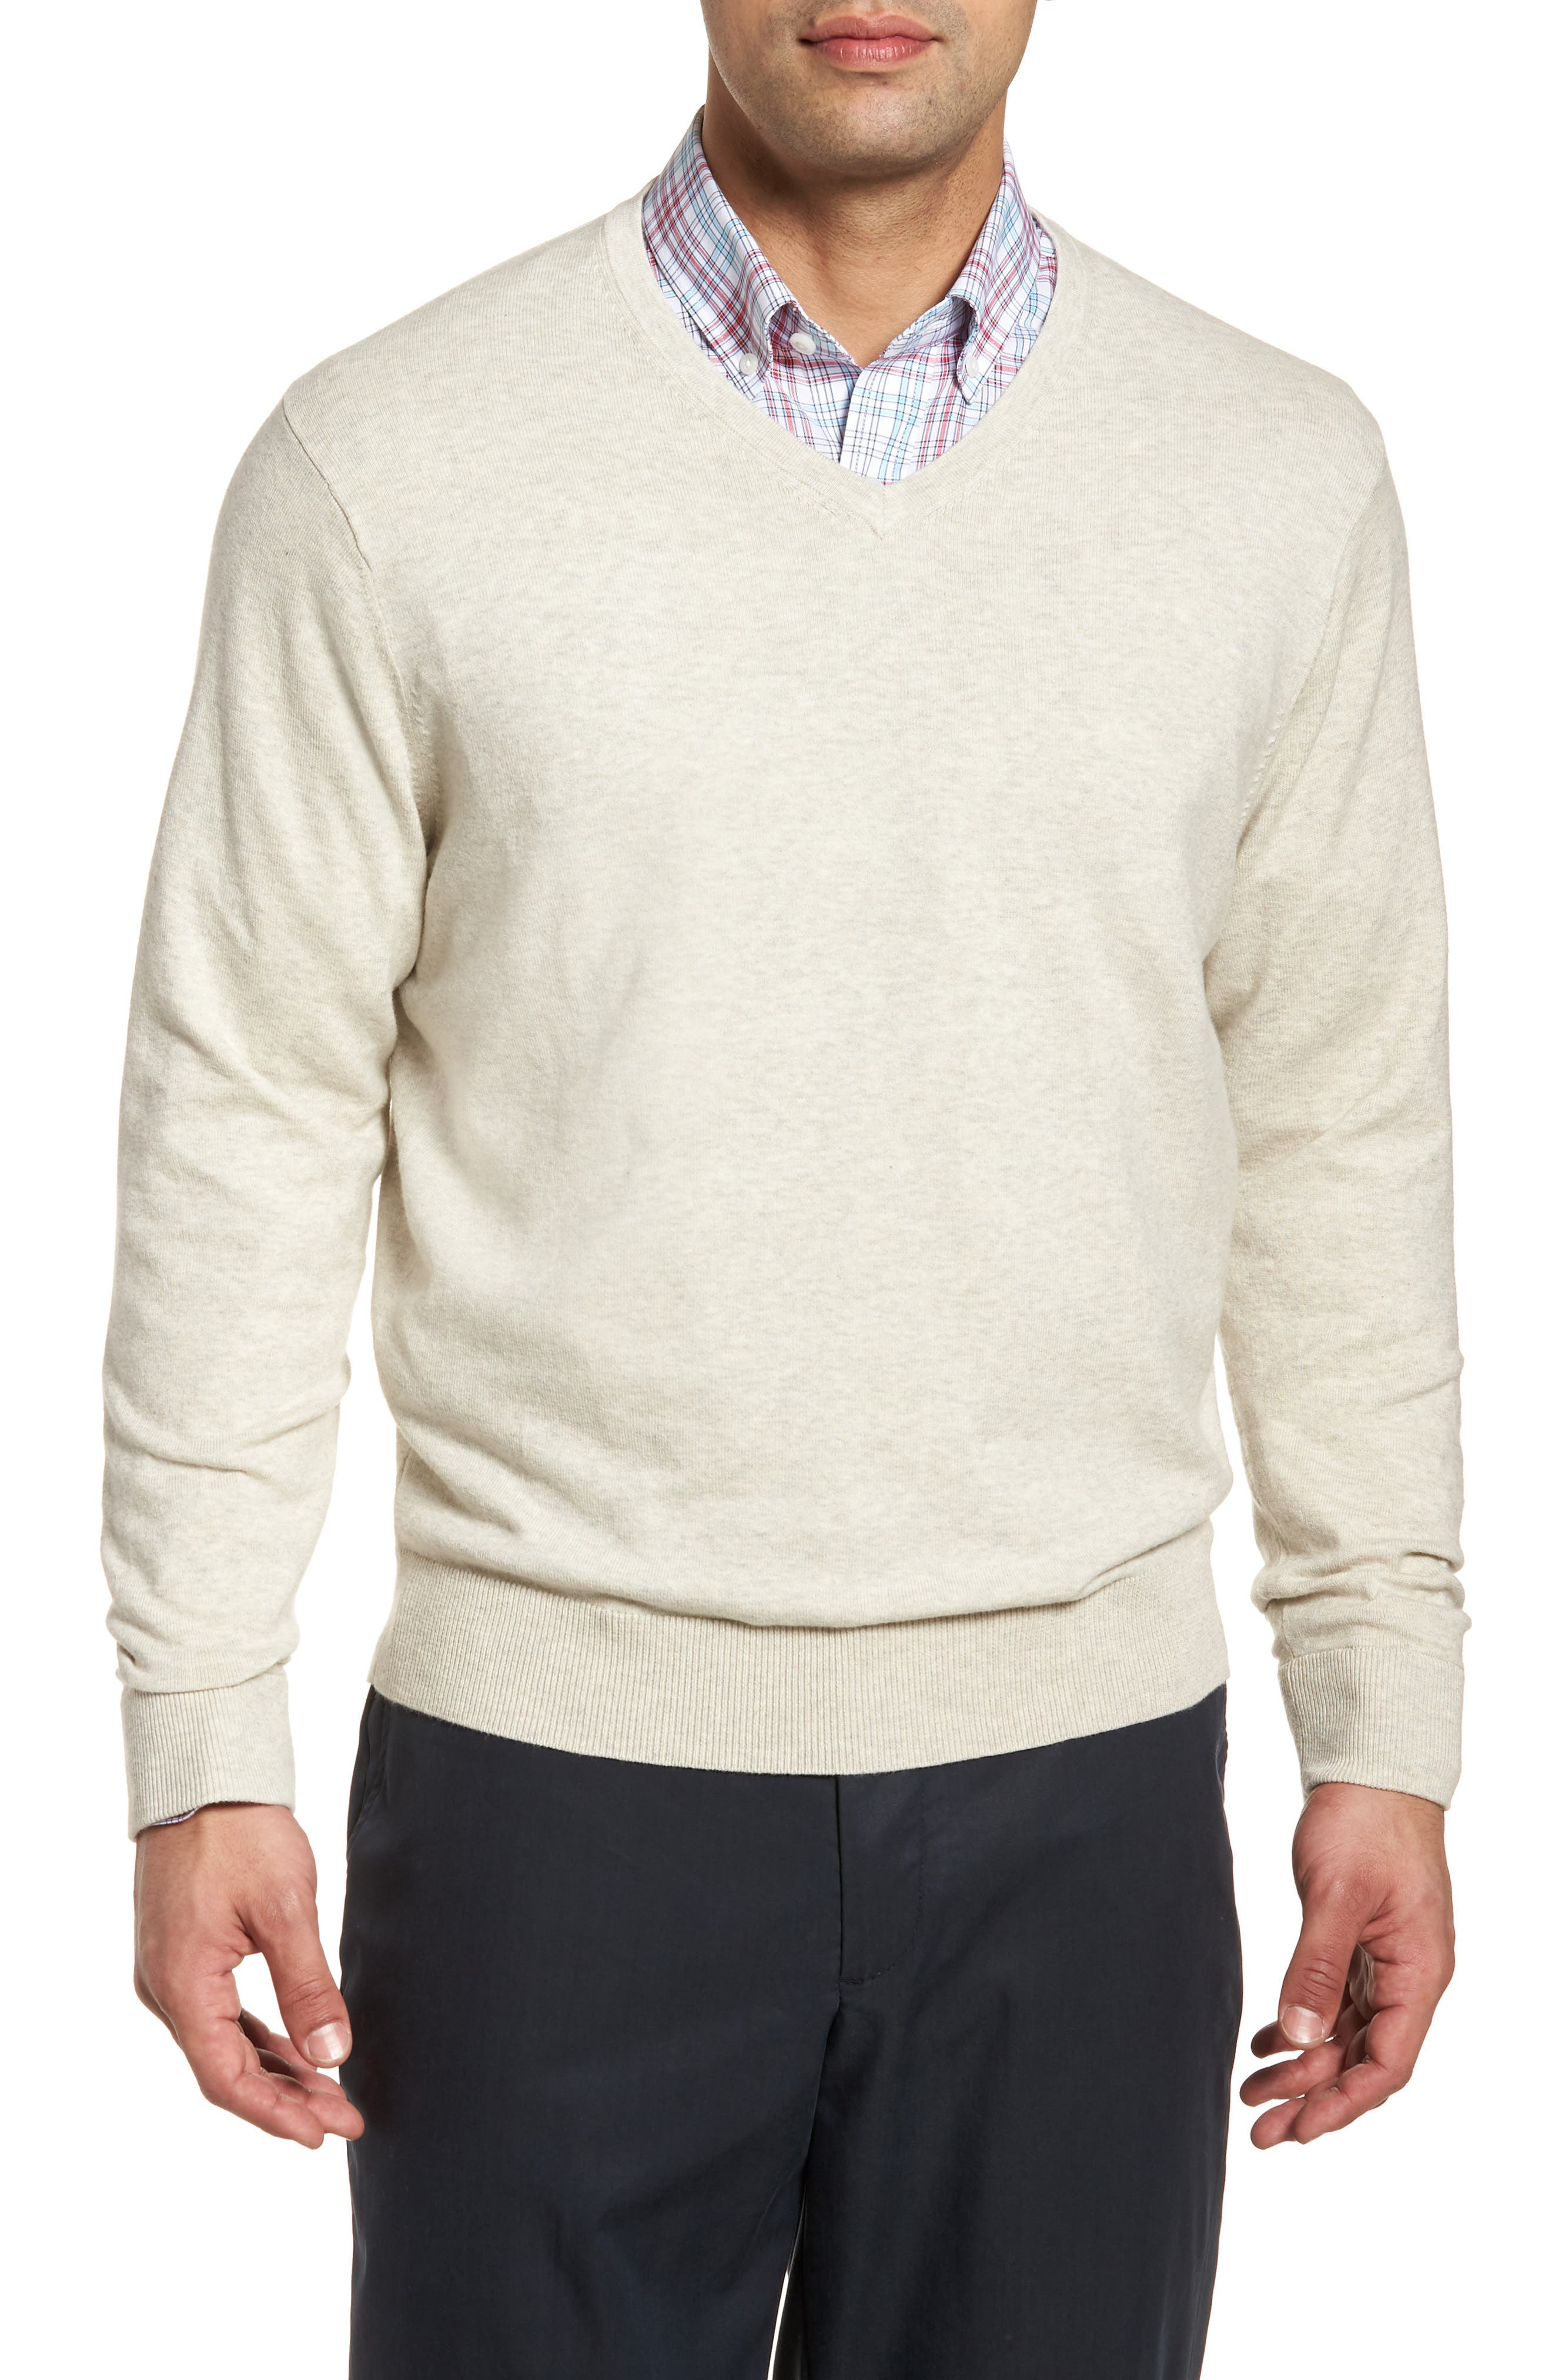 Cutter & Buck Lakemont Classic Fit V-Neck Sweater, Grey